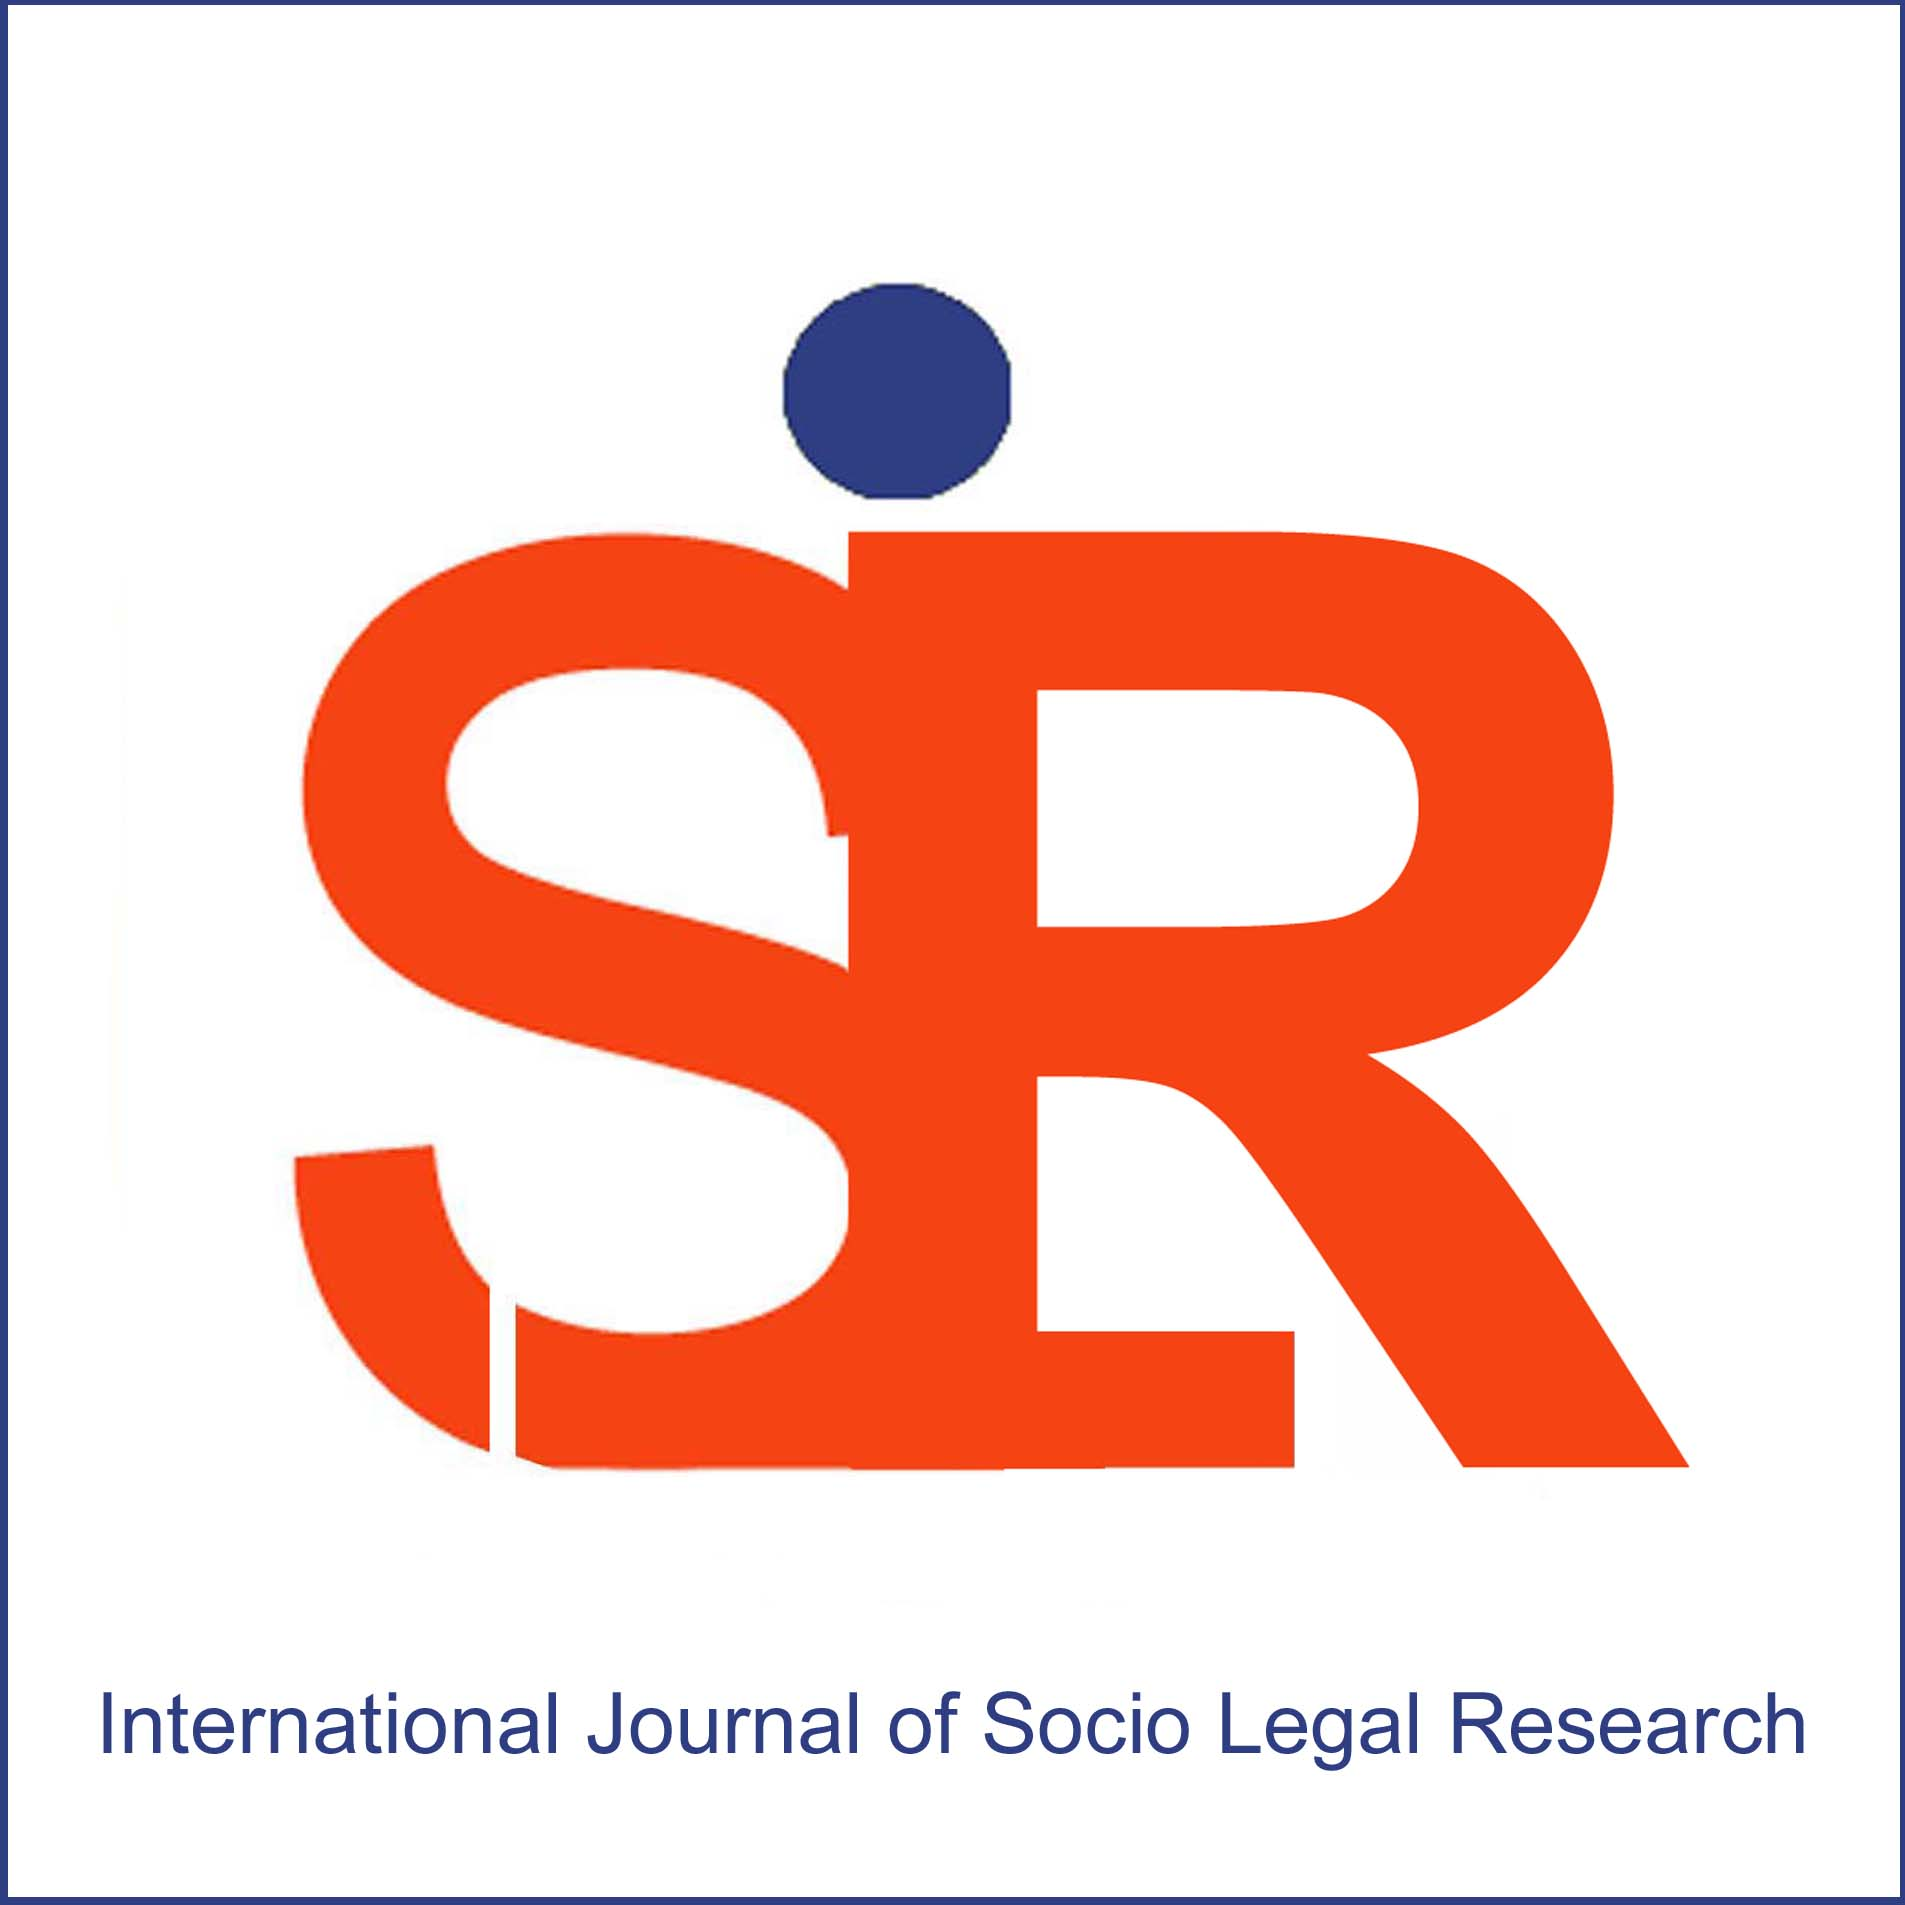 CfP: International Journal of Socio-Legal Research Volume 5, Issue 4 [Publication Charge Rs. 1500]: Submit by Oct 20